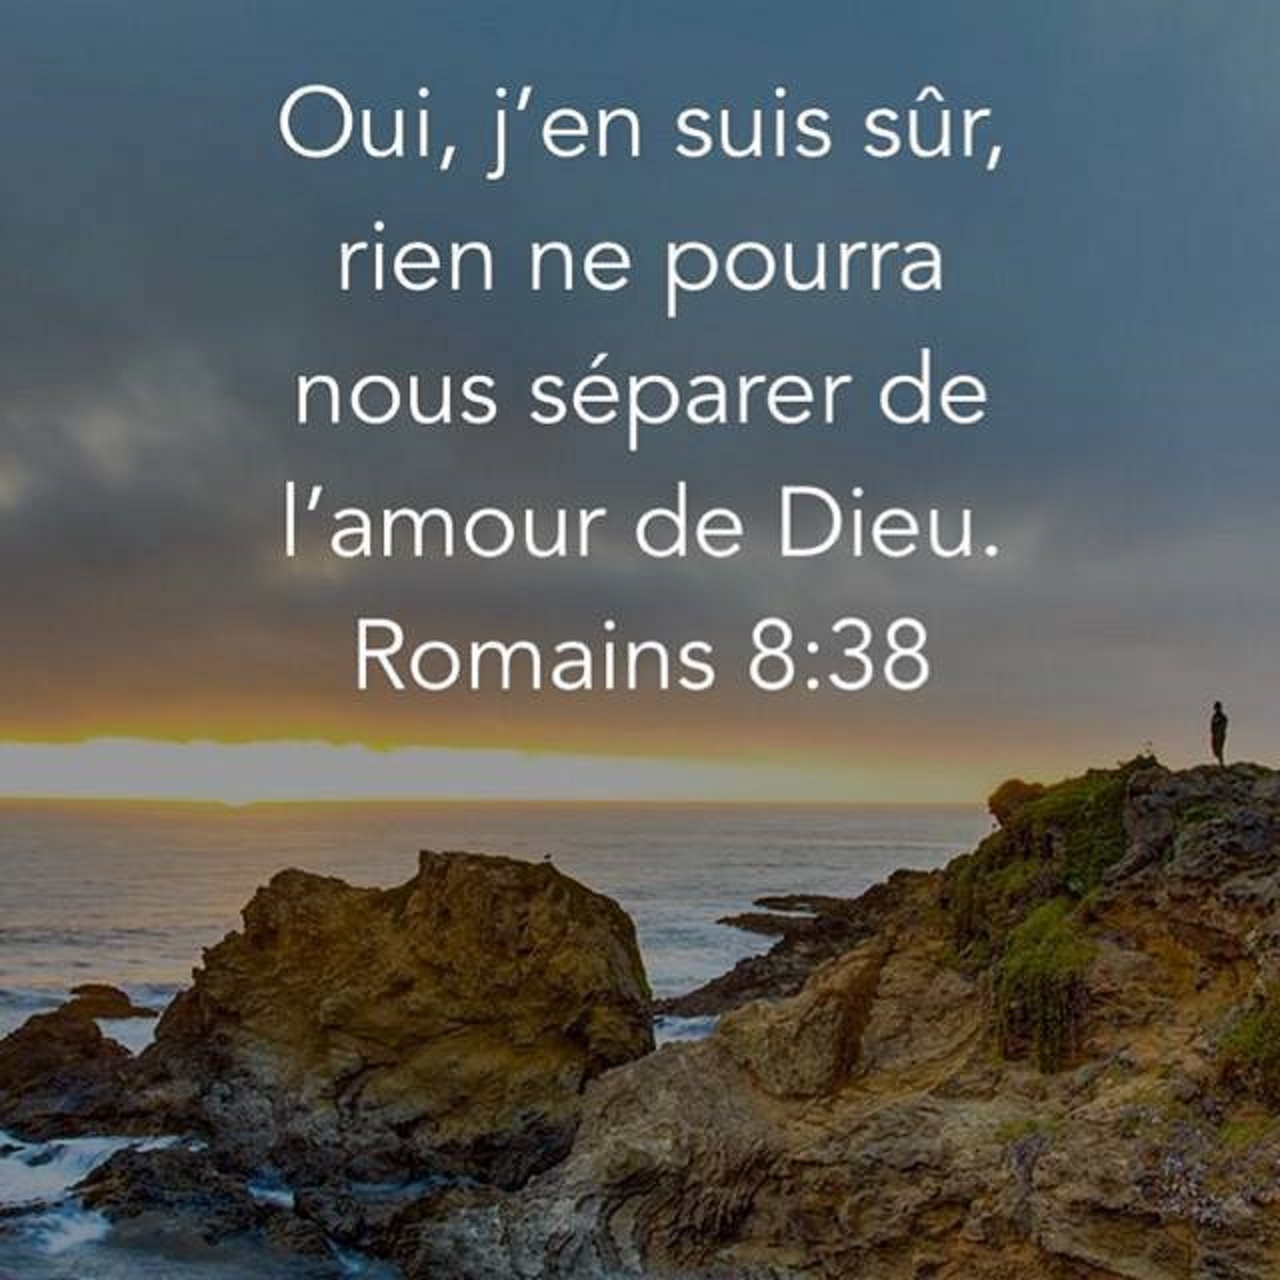 Paroles de Jésus 2017 50.jpg